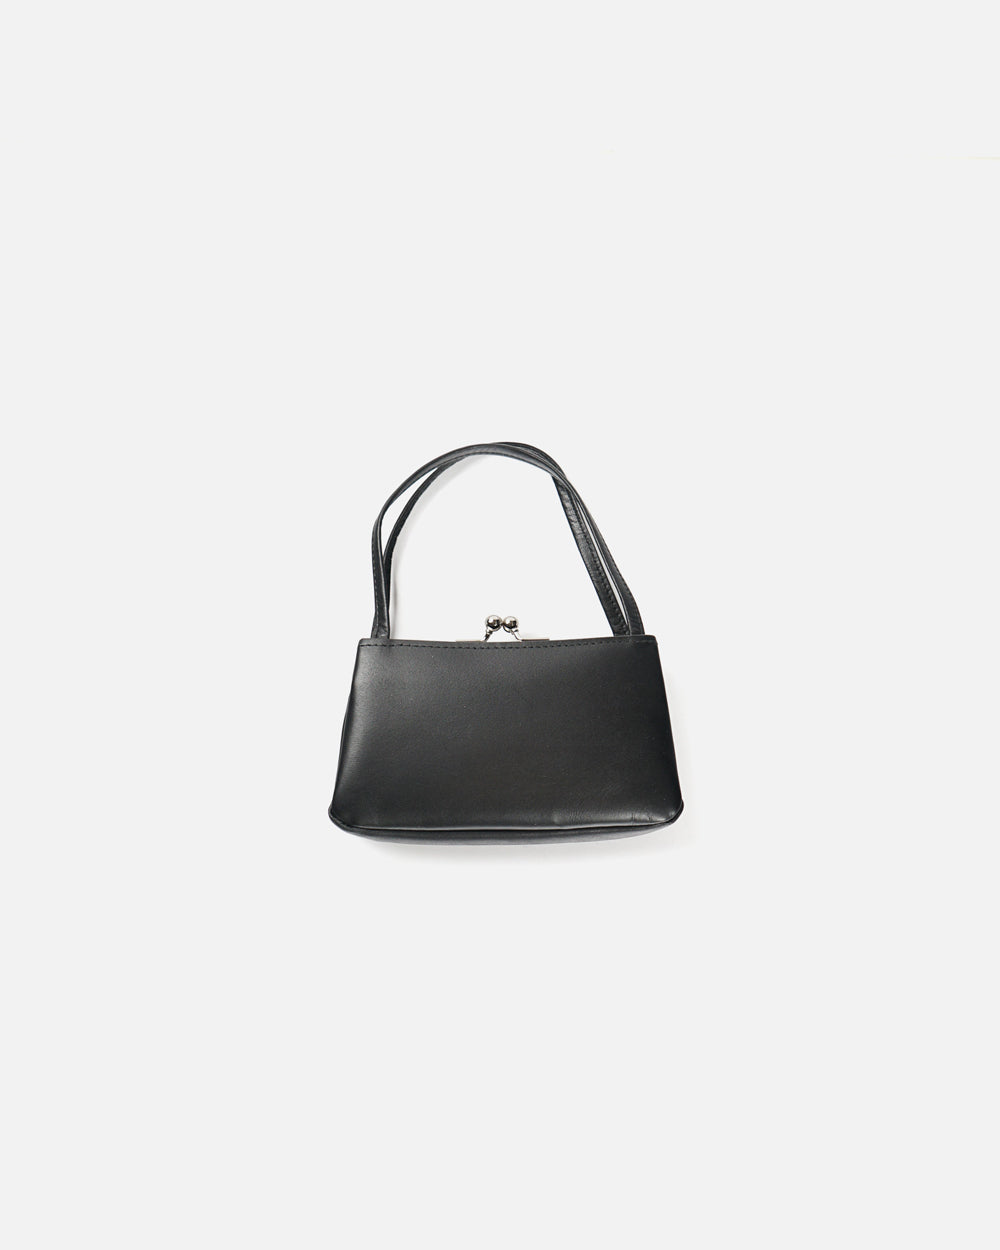 Black Leather Purse With Handle